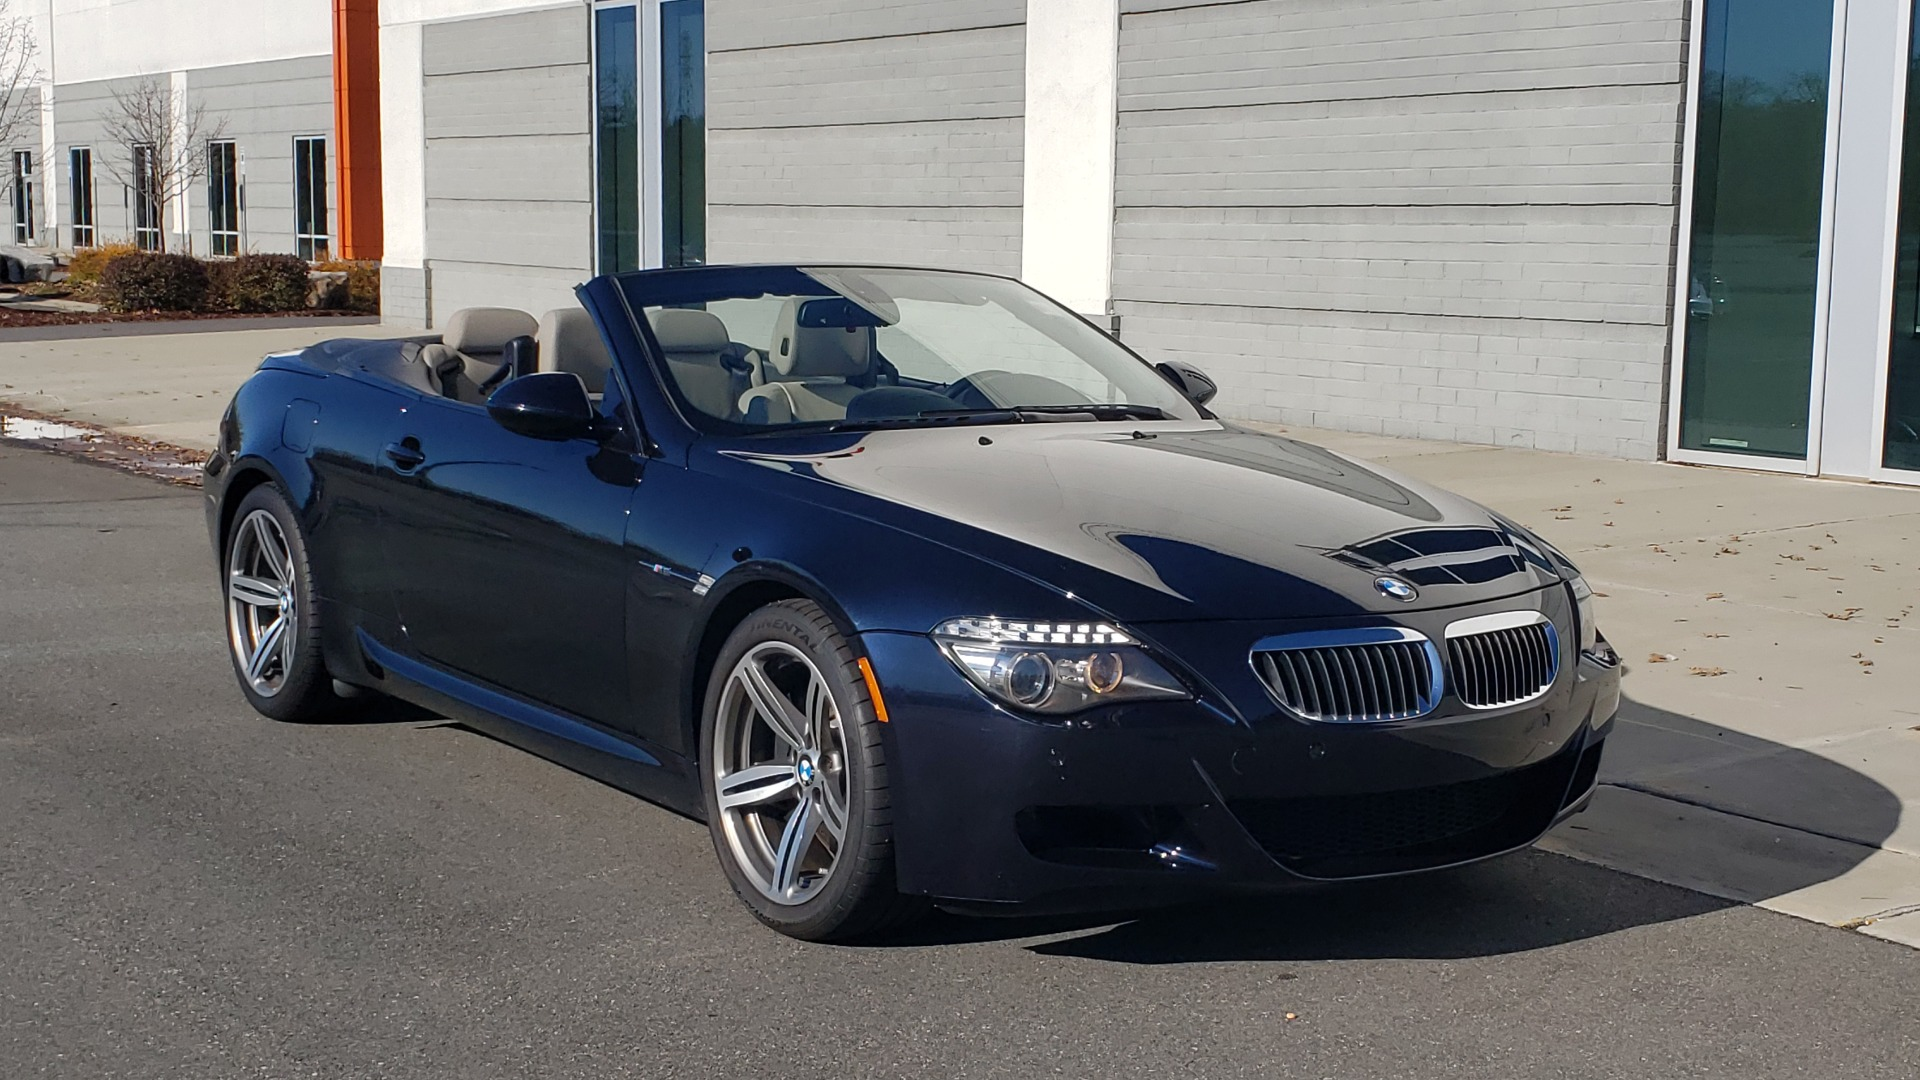 Used 2009 BMW M6 CONVERTIBLE / 5.0L V10 (500HP) / PREM SND / HUD / 19IN WHEELS for sale $24,999 at Formula Imports in Charlotte NC 28227 9